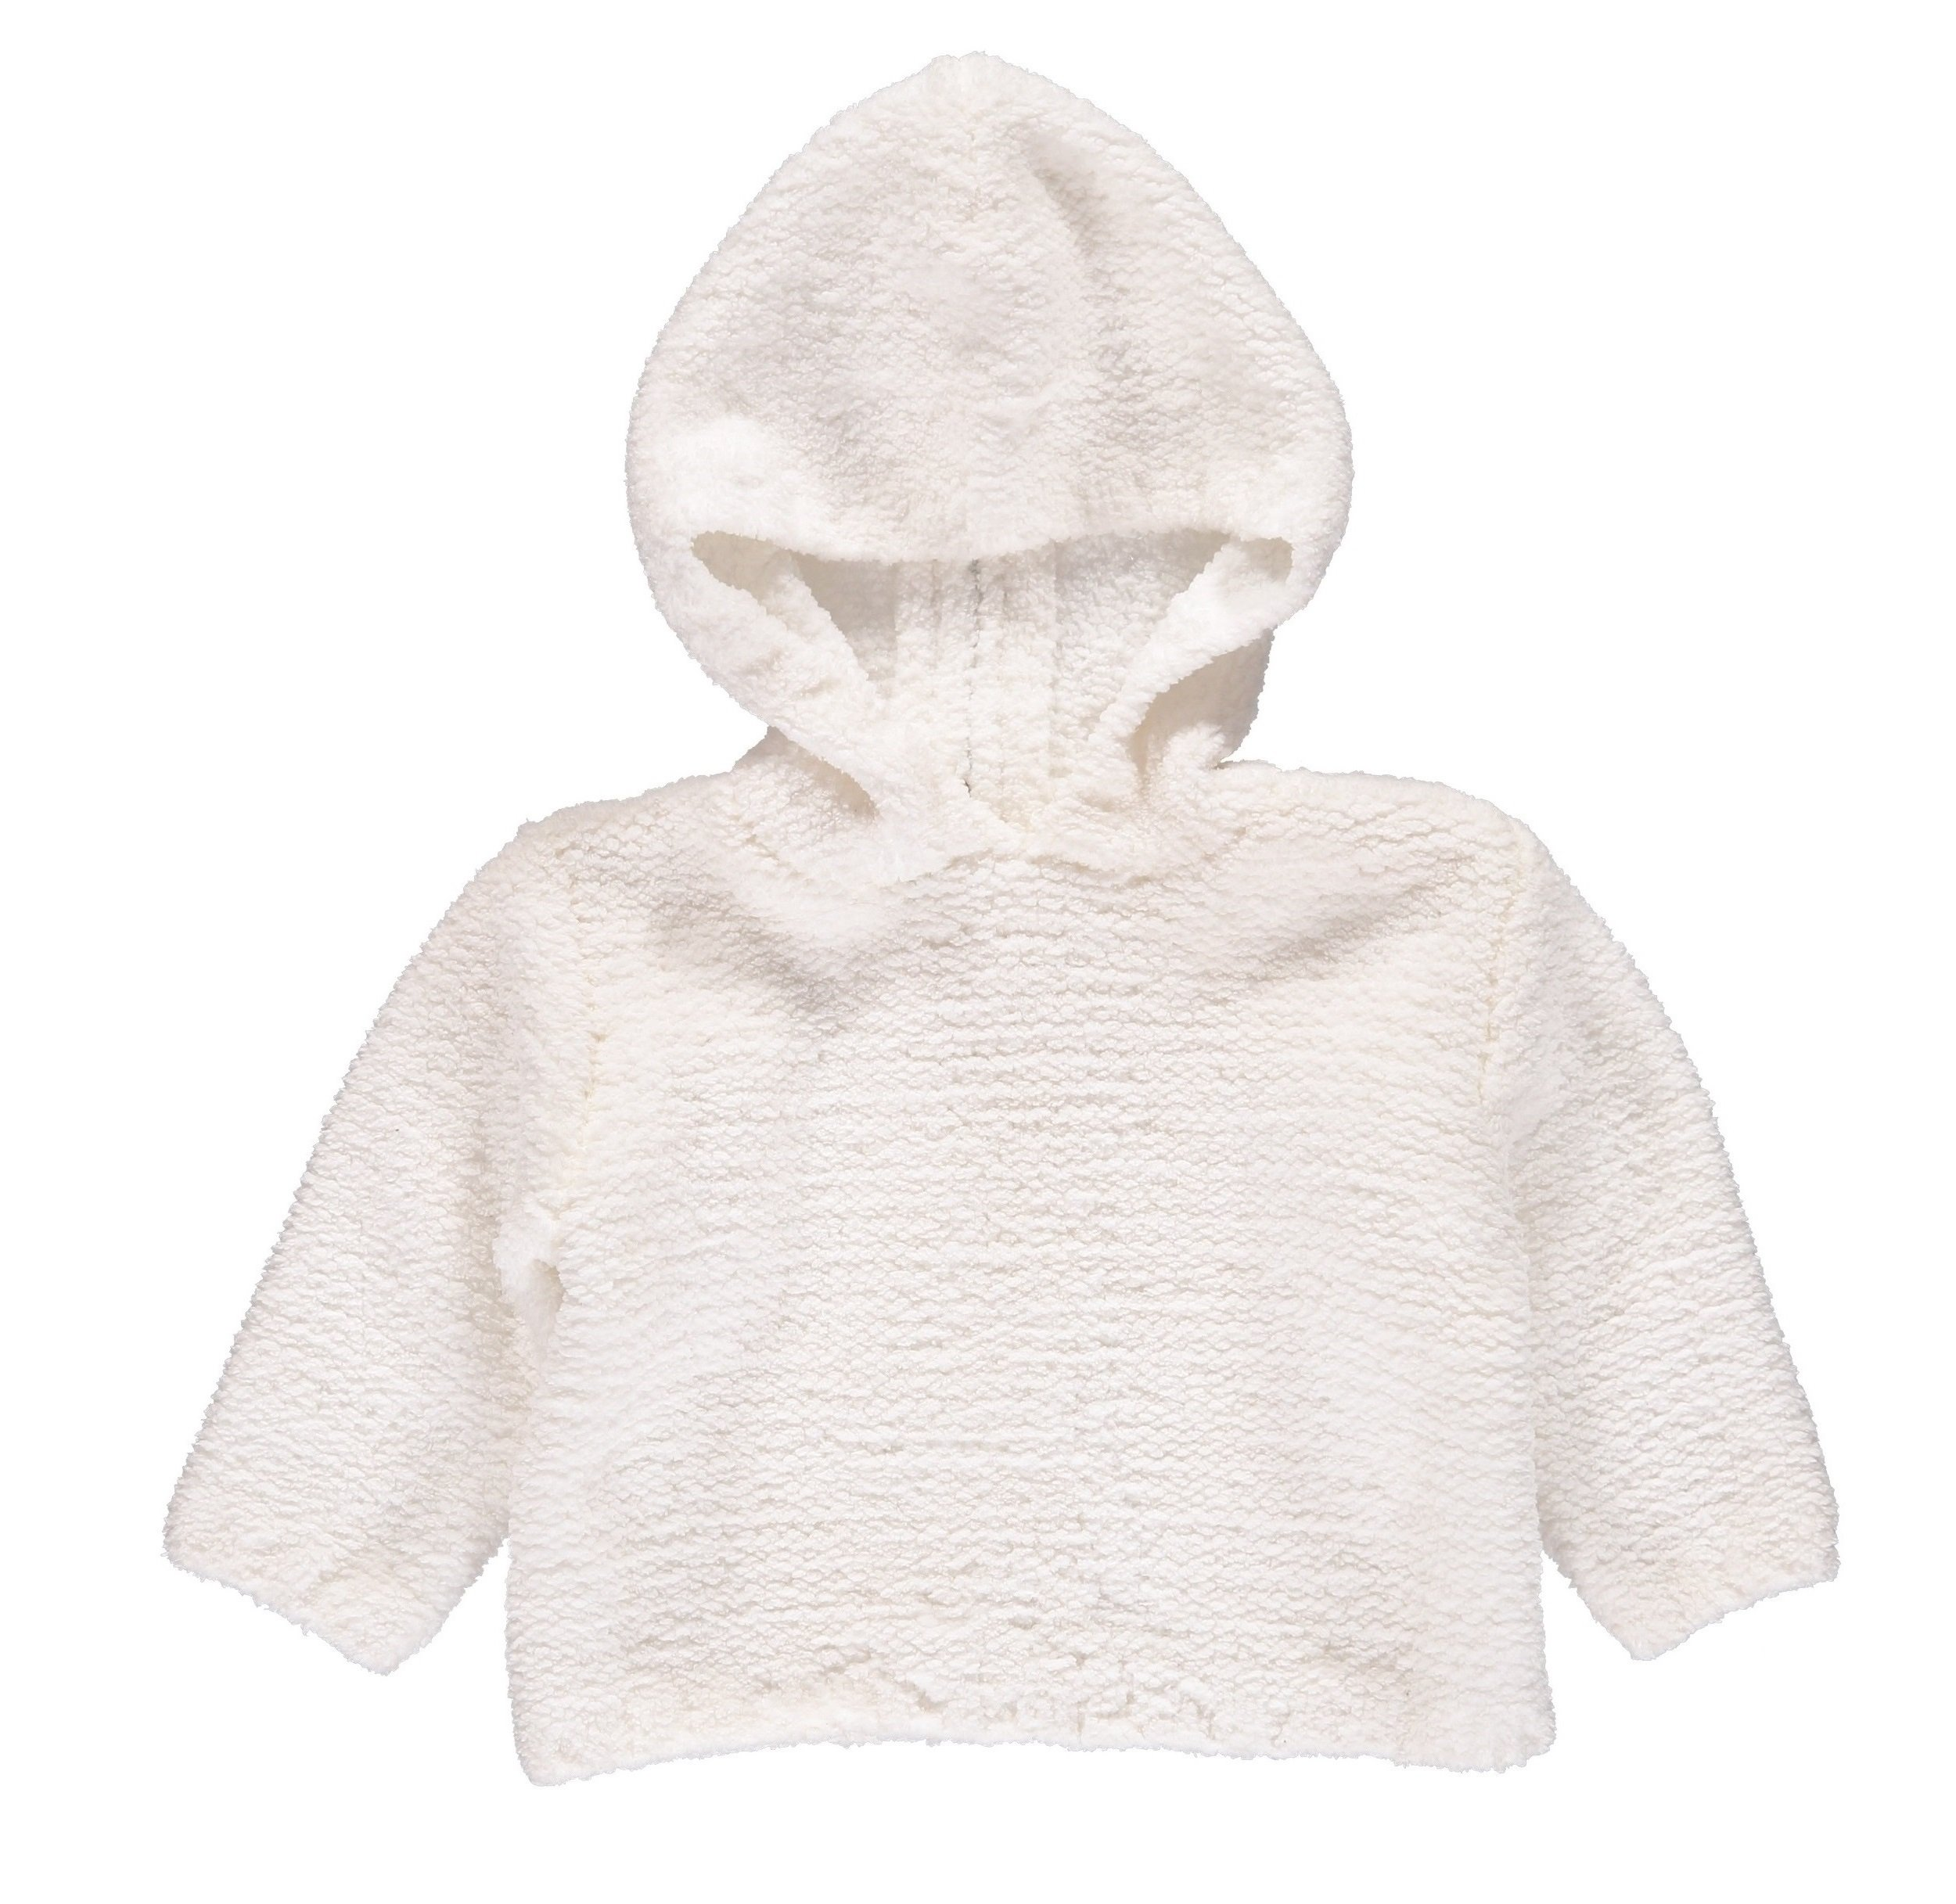 Carriage Boutique Baby Sweaters White Zip Back Chenille Long Sleeve Fall/Winter Pullovers by Carriage Boutique